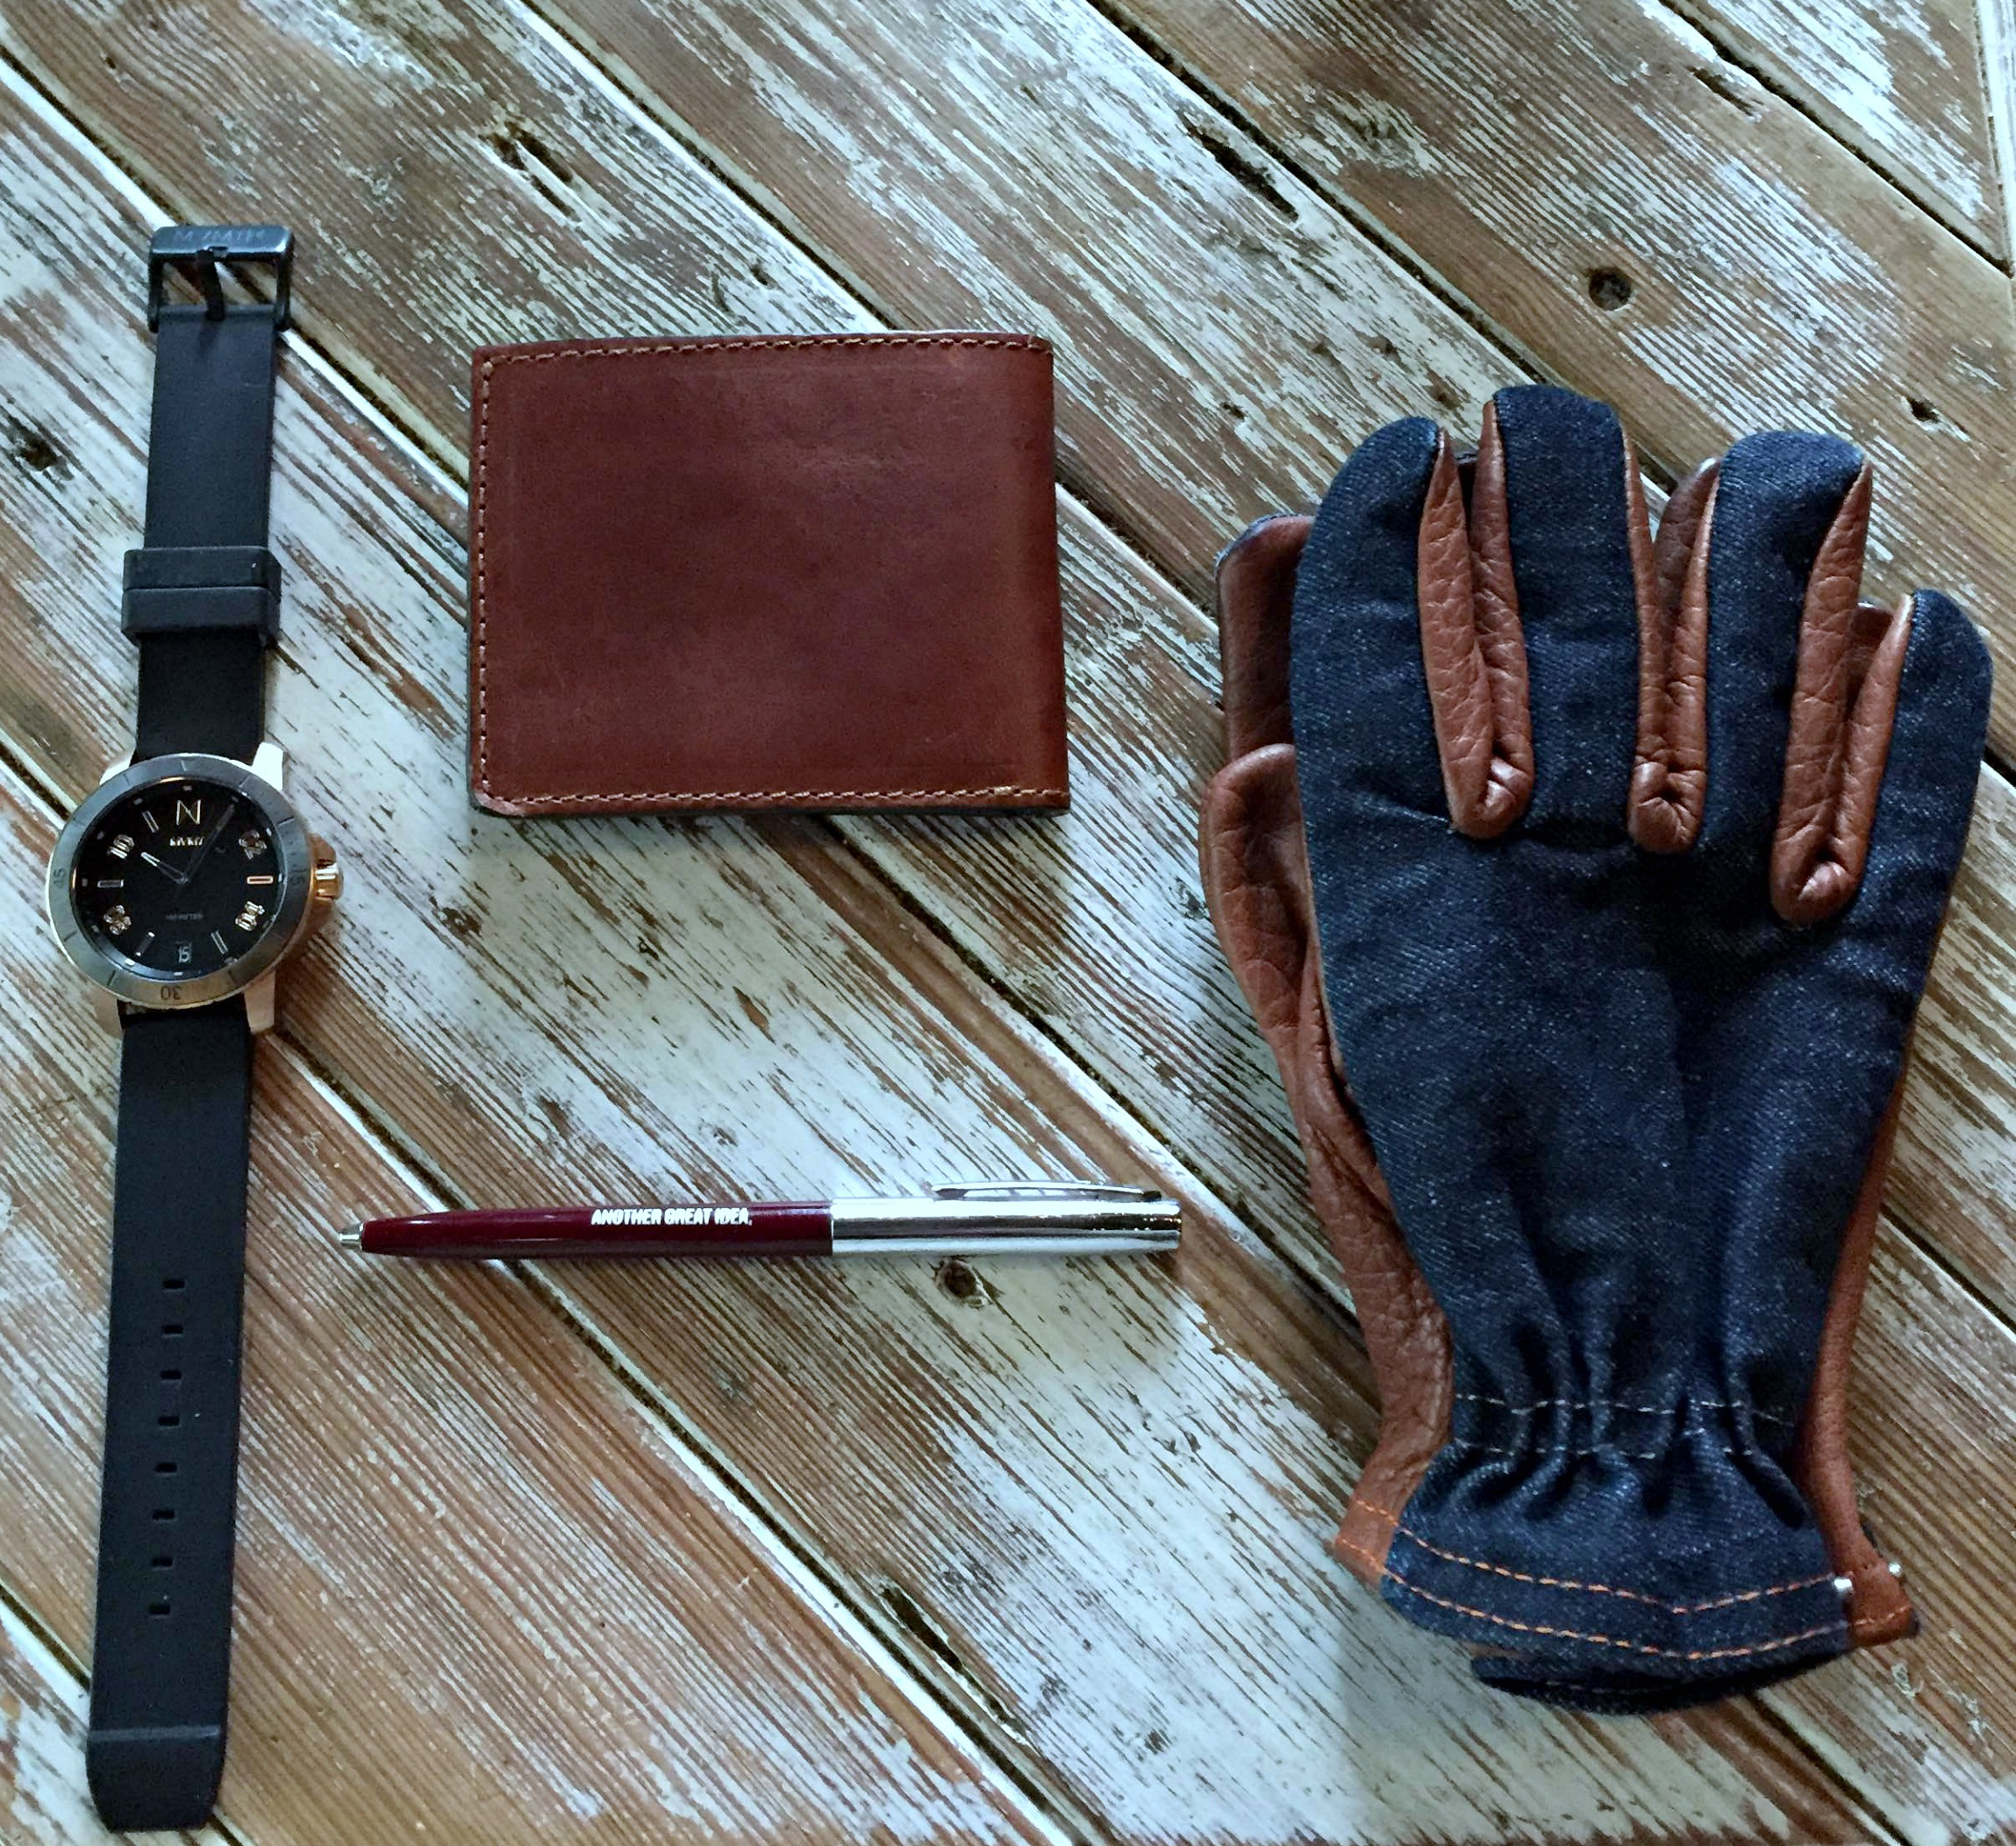 The everyday carry for a quick road trip. Ranger Gloves by Grifter Company. Wallet by Brothers Leather (Get 15% off with the code 'BrotherBeau15'! Calypso Watch by MVMT Watches. Pen by Owen & Fred.